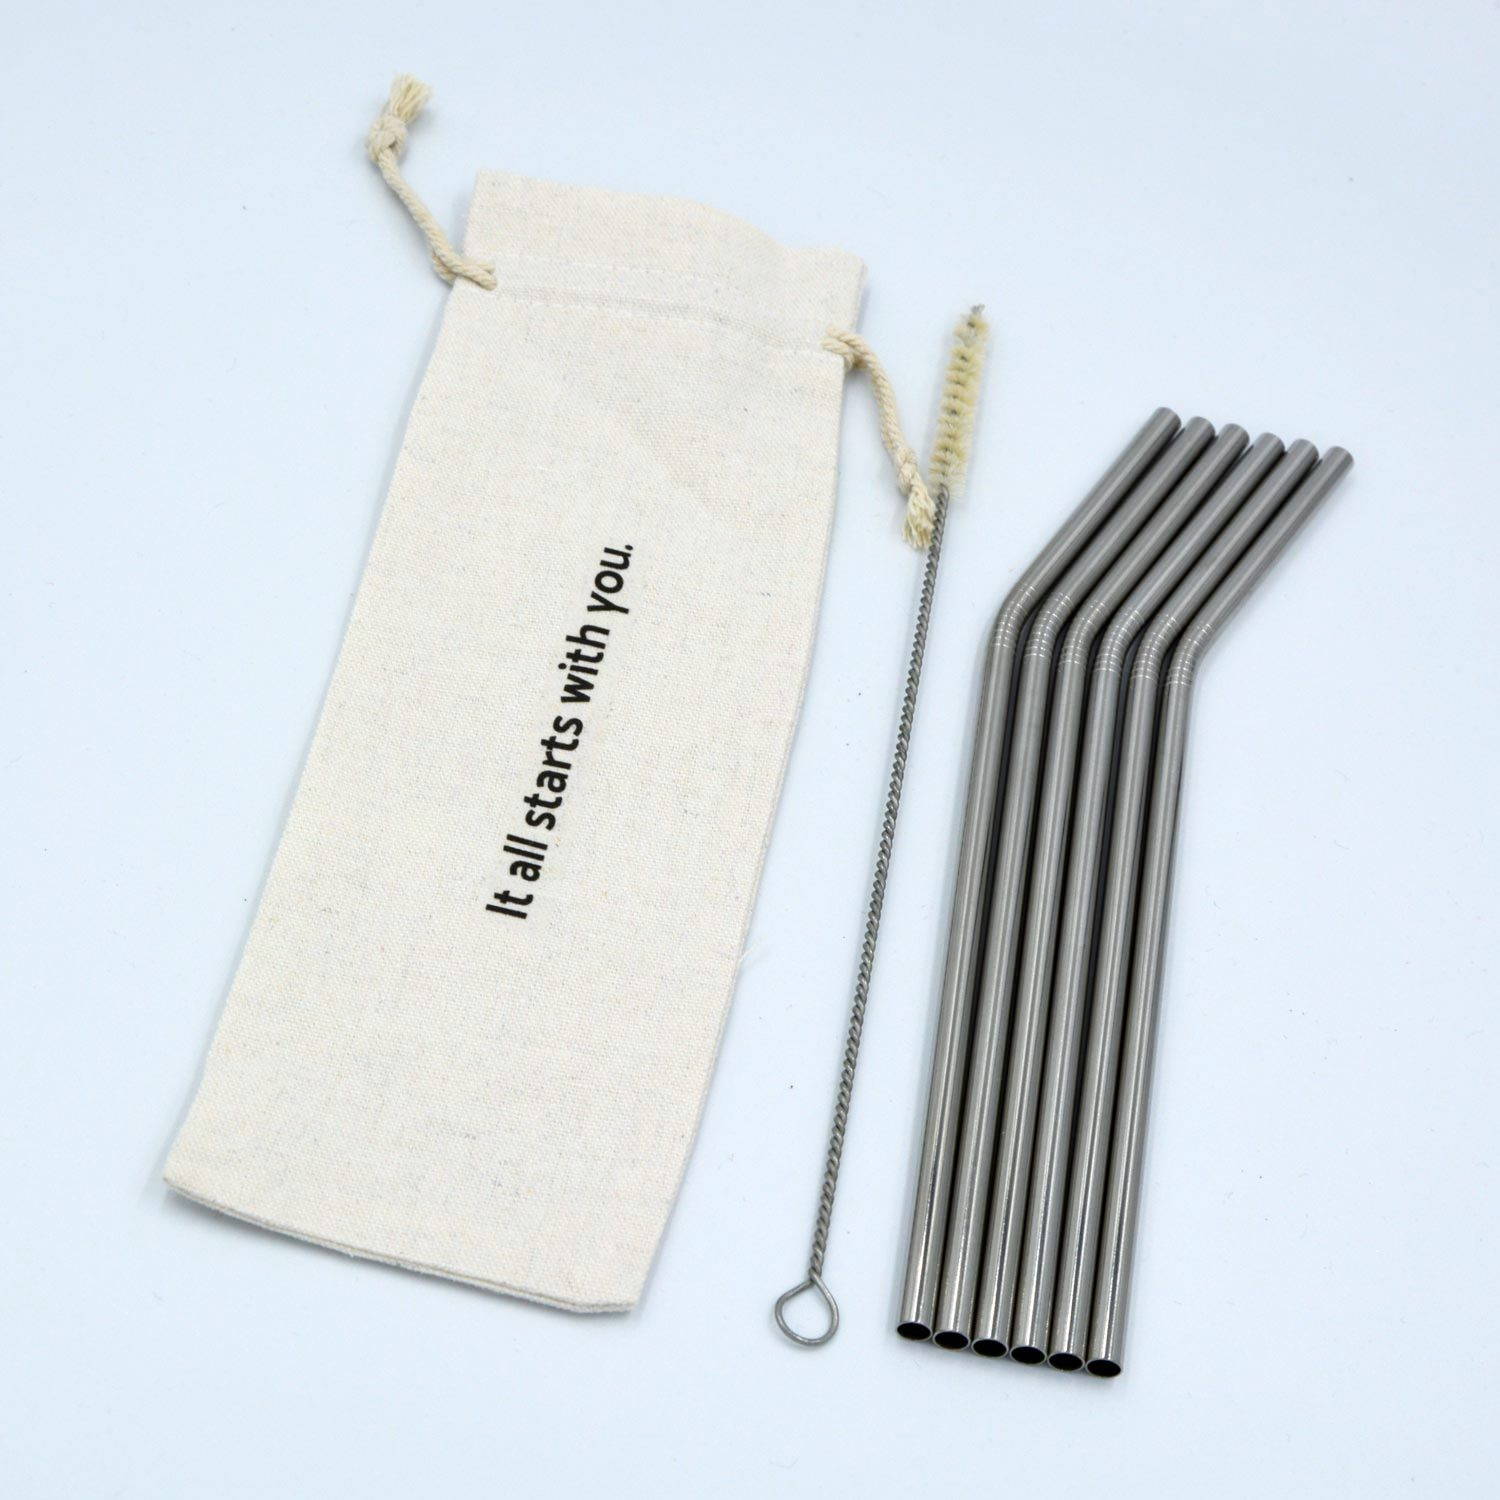 Silver metal straws with a cleaning brush